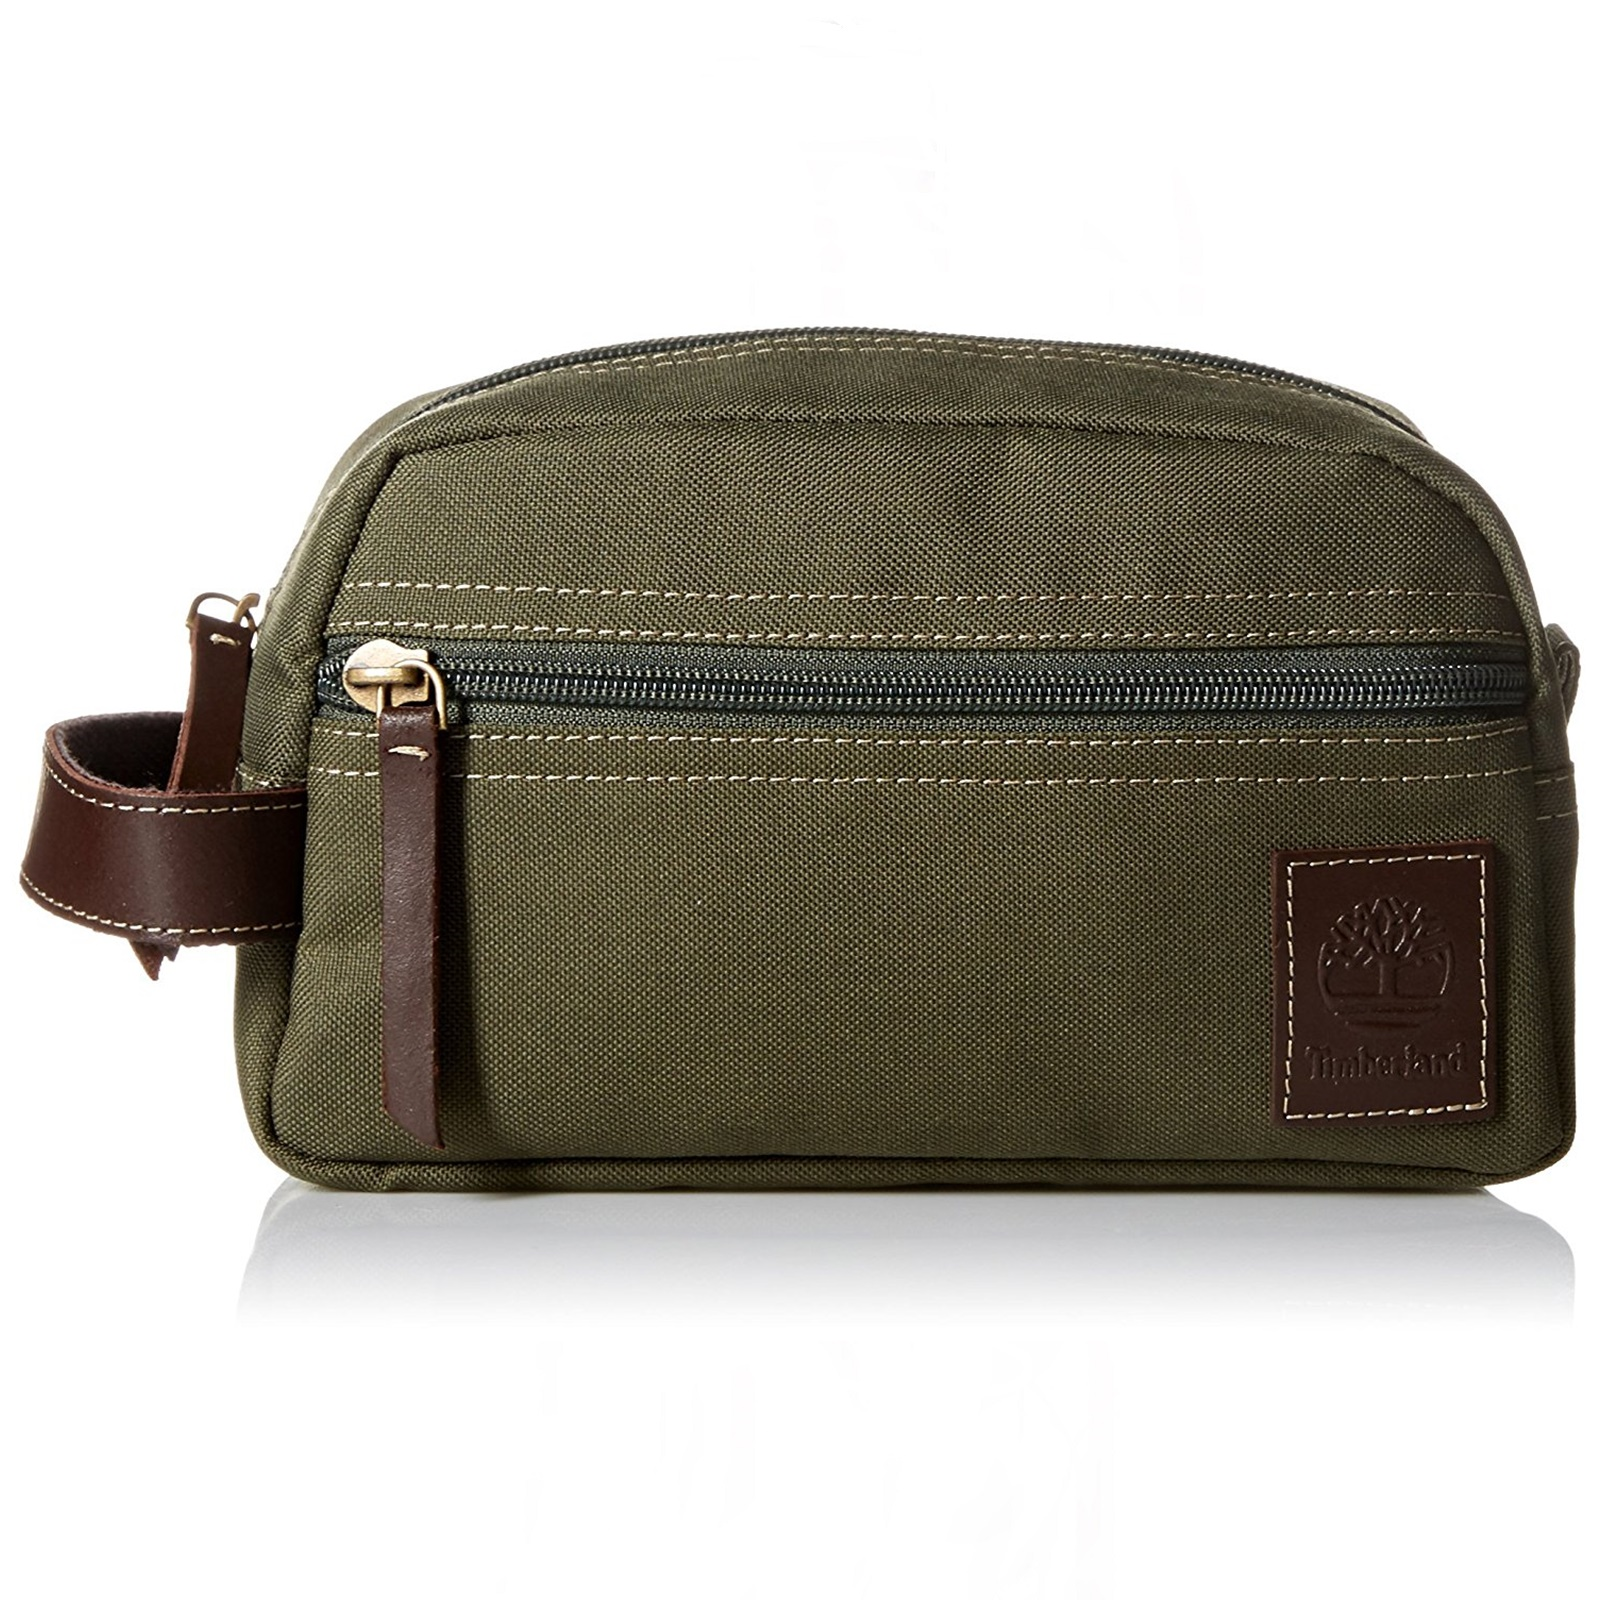 e412c871b554 Travel Bags For Mens Toiletries | Stanford Center for Opportunity ...